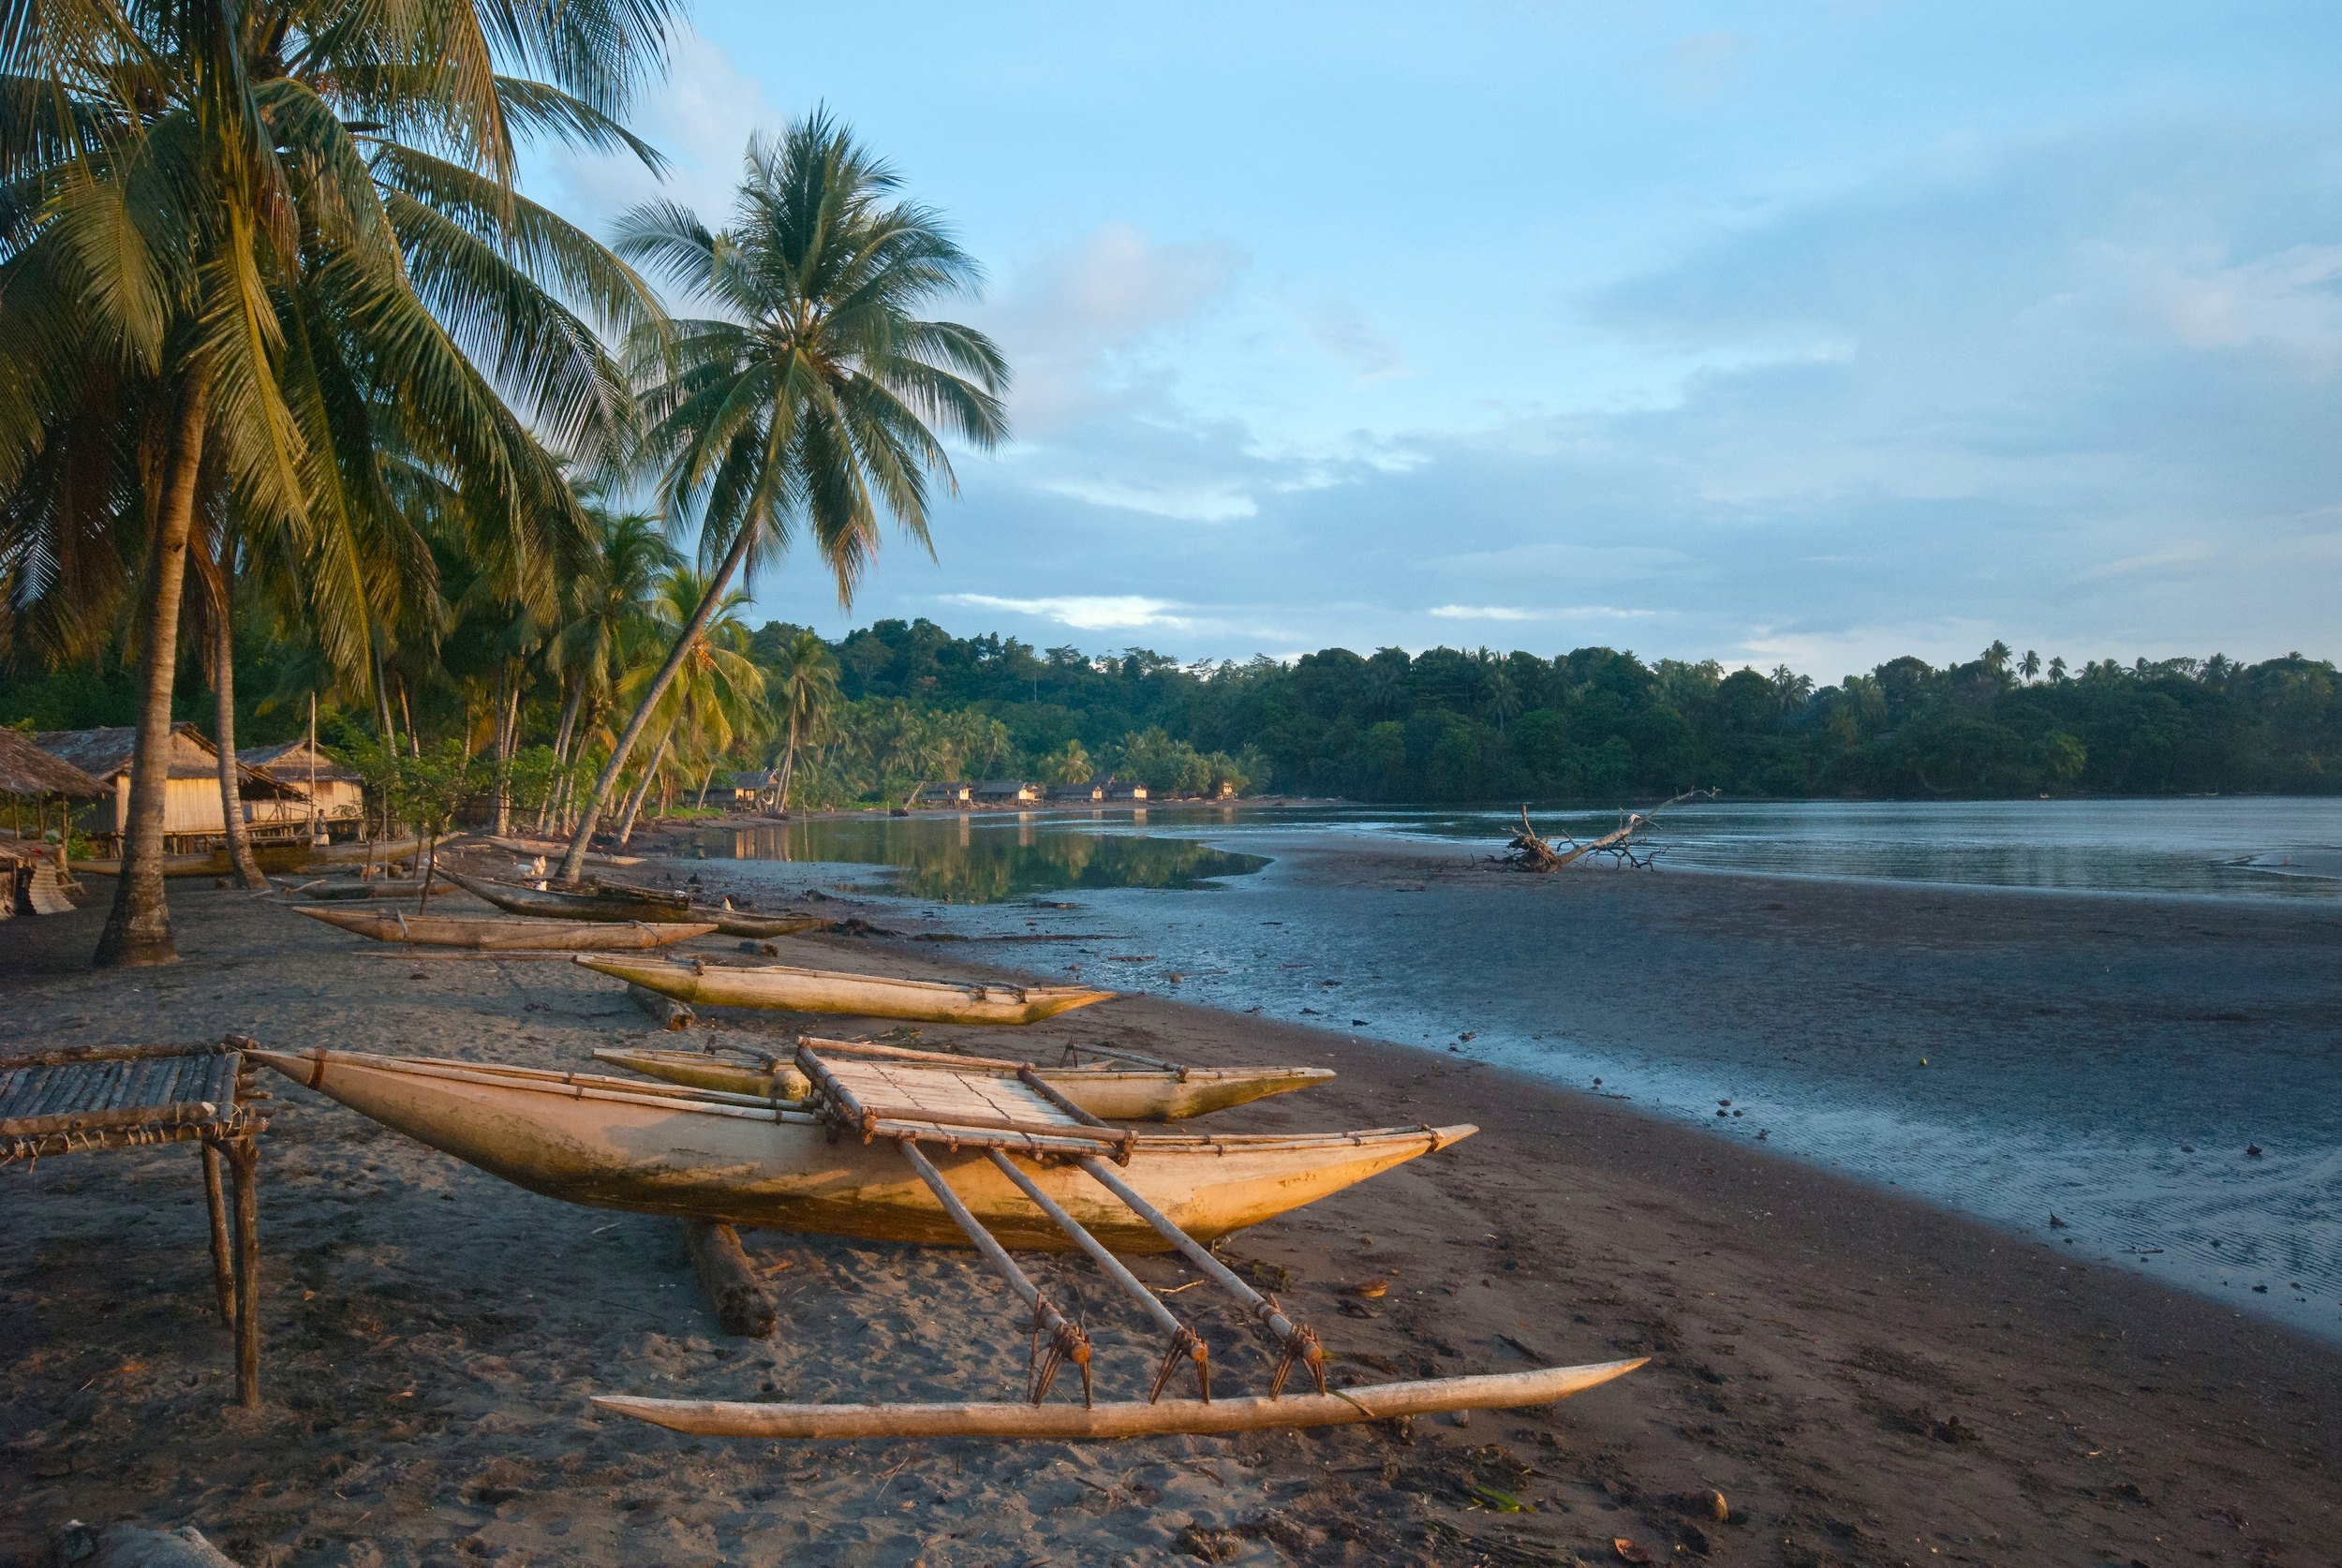 Traditional wooden canoes on the beach at dusk and low-tide, Papua New Guinea